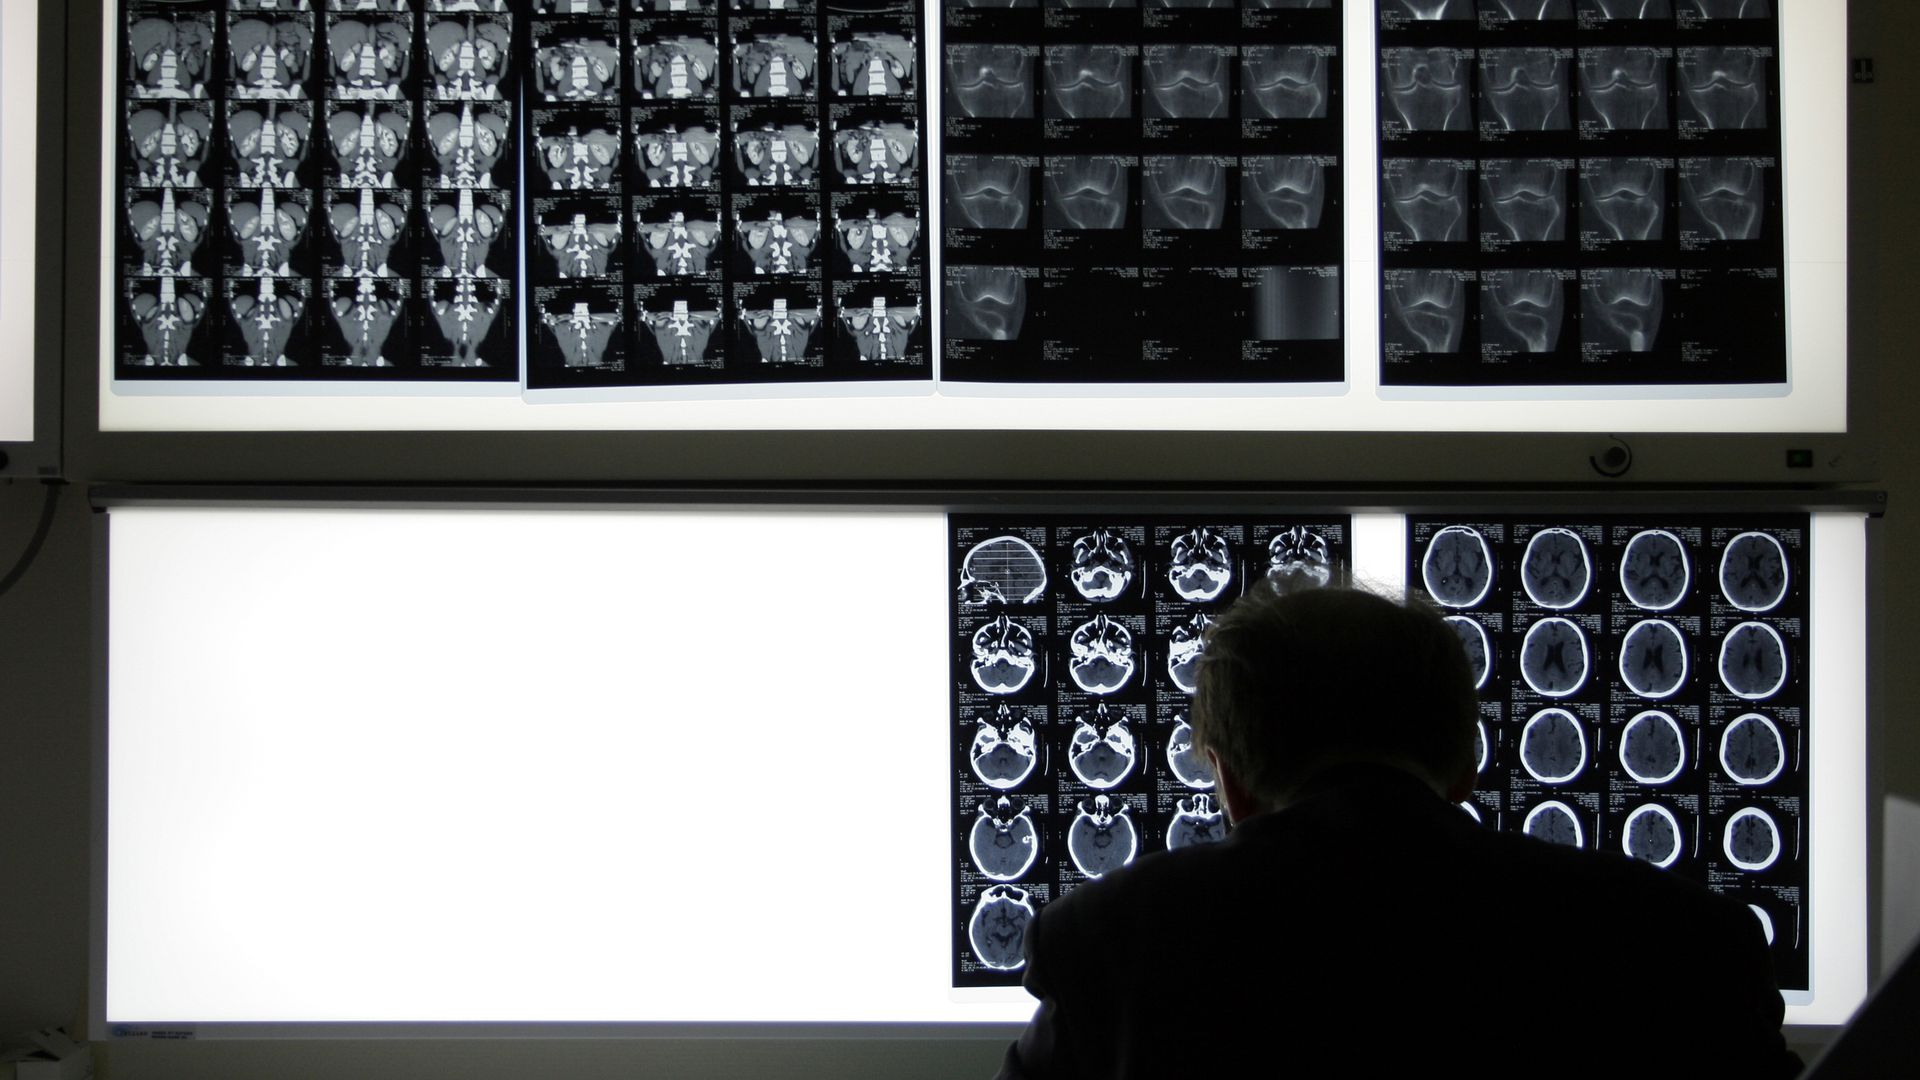 A radiologist looking at scans